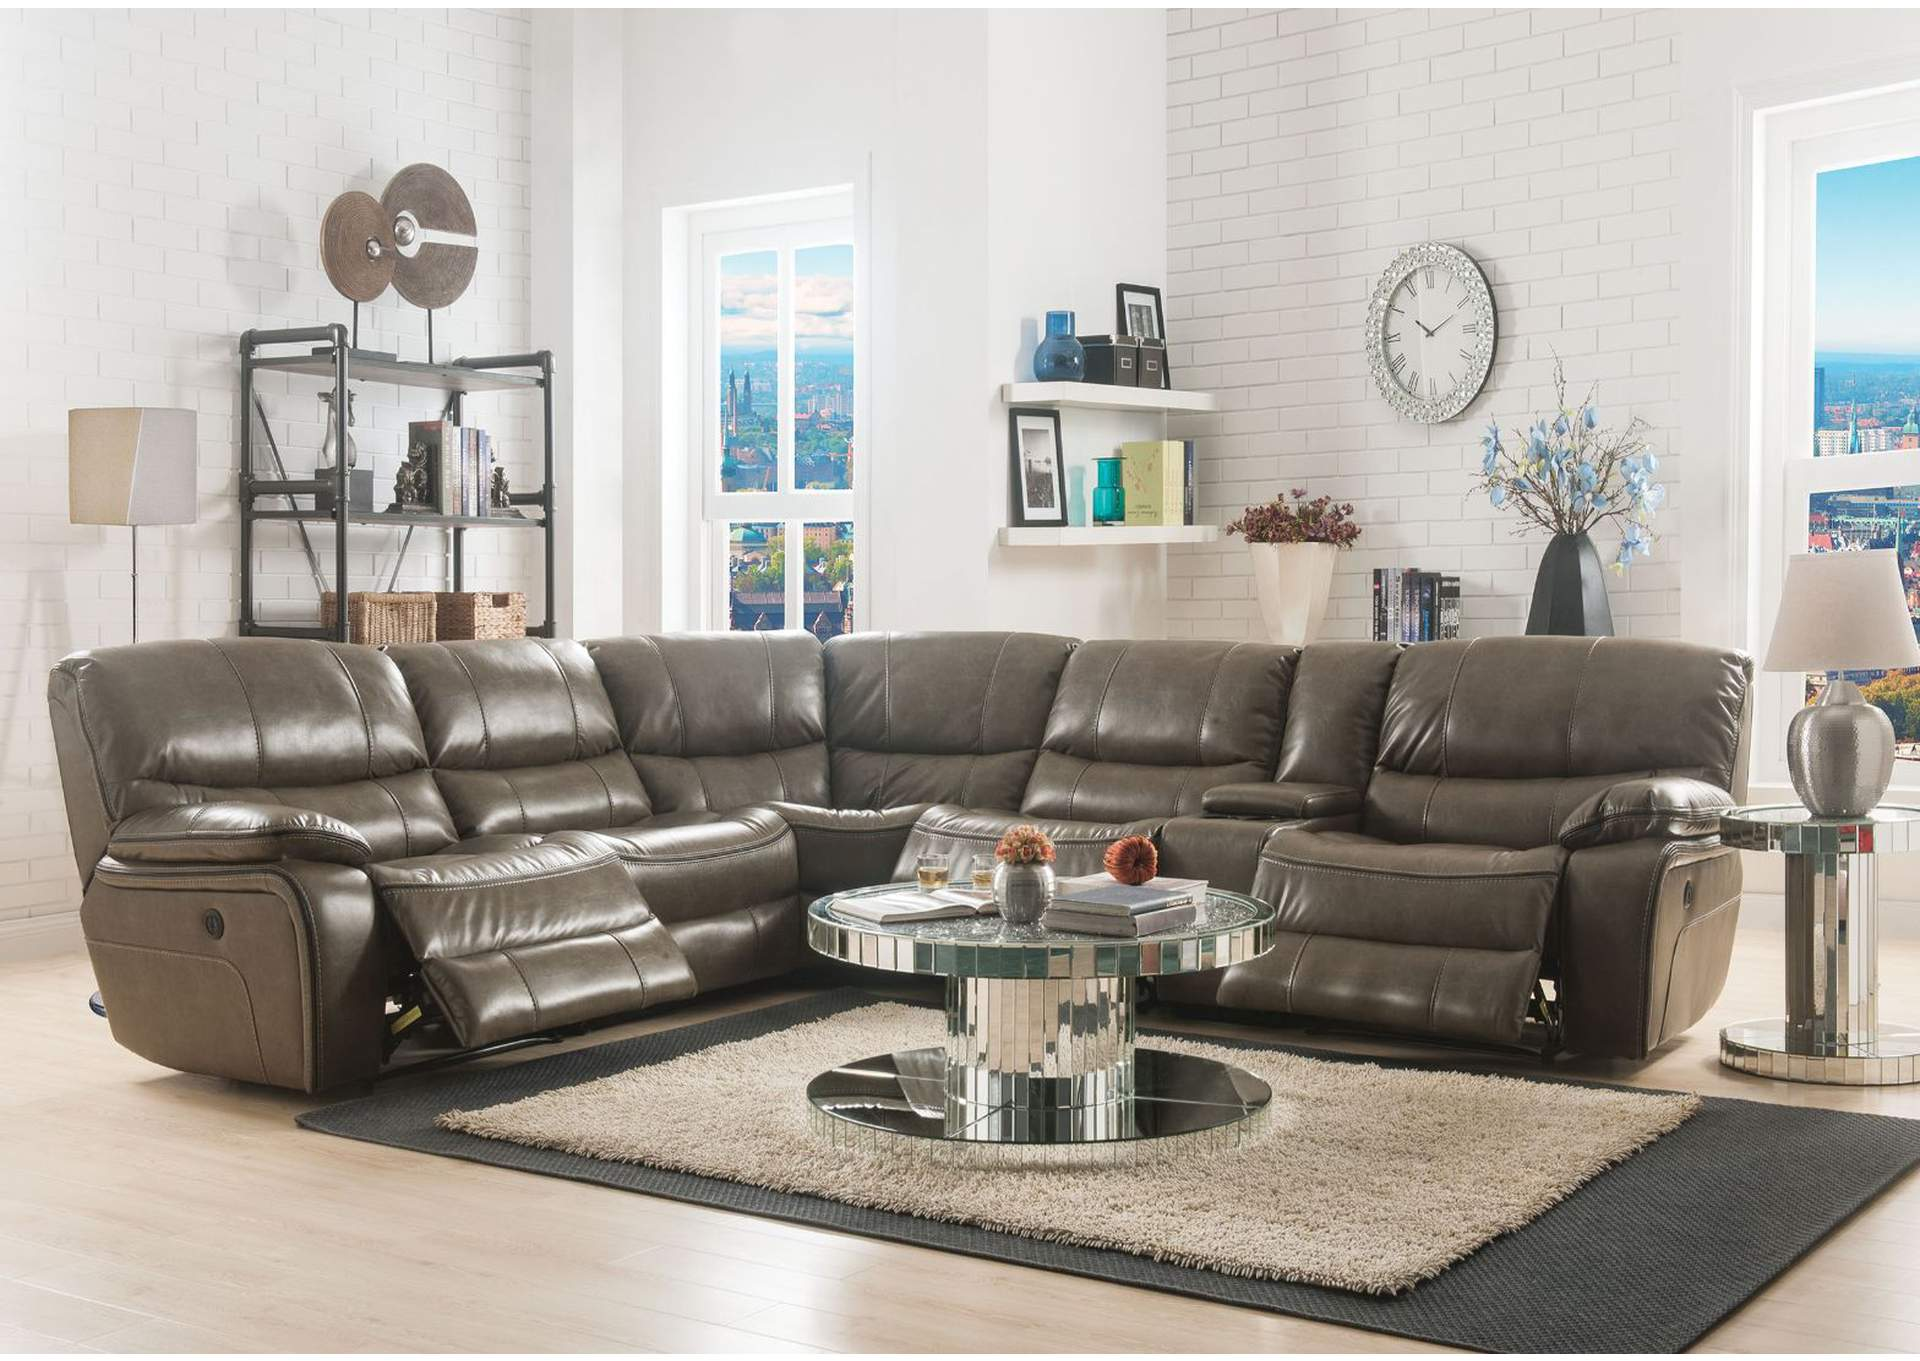 Brax Taupe Leather-Gel Sectional Sofa,Acme